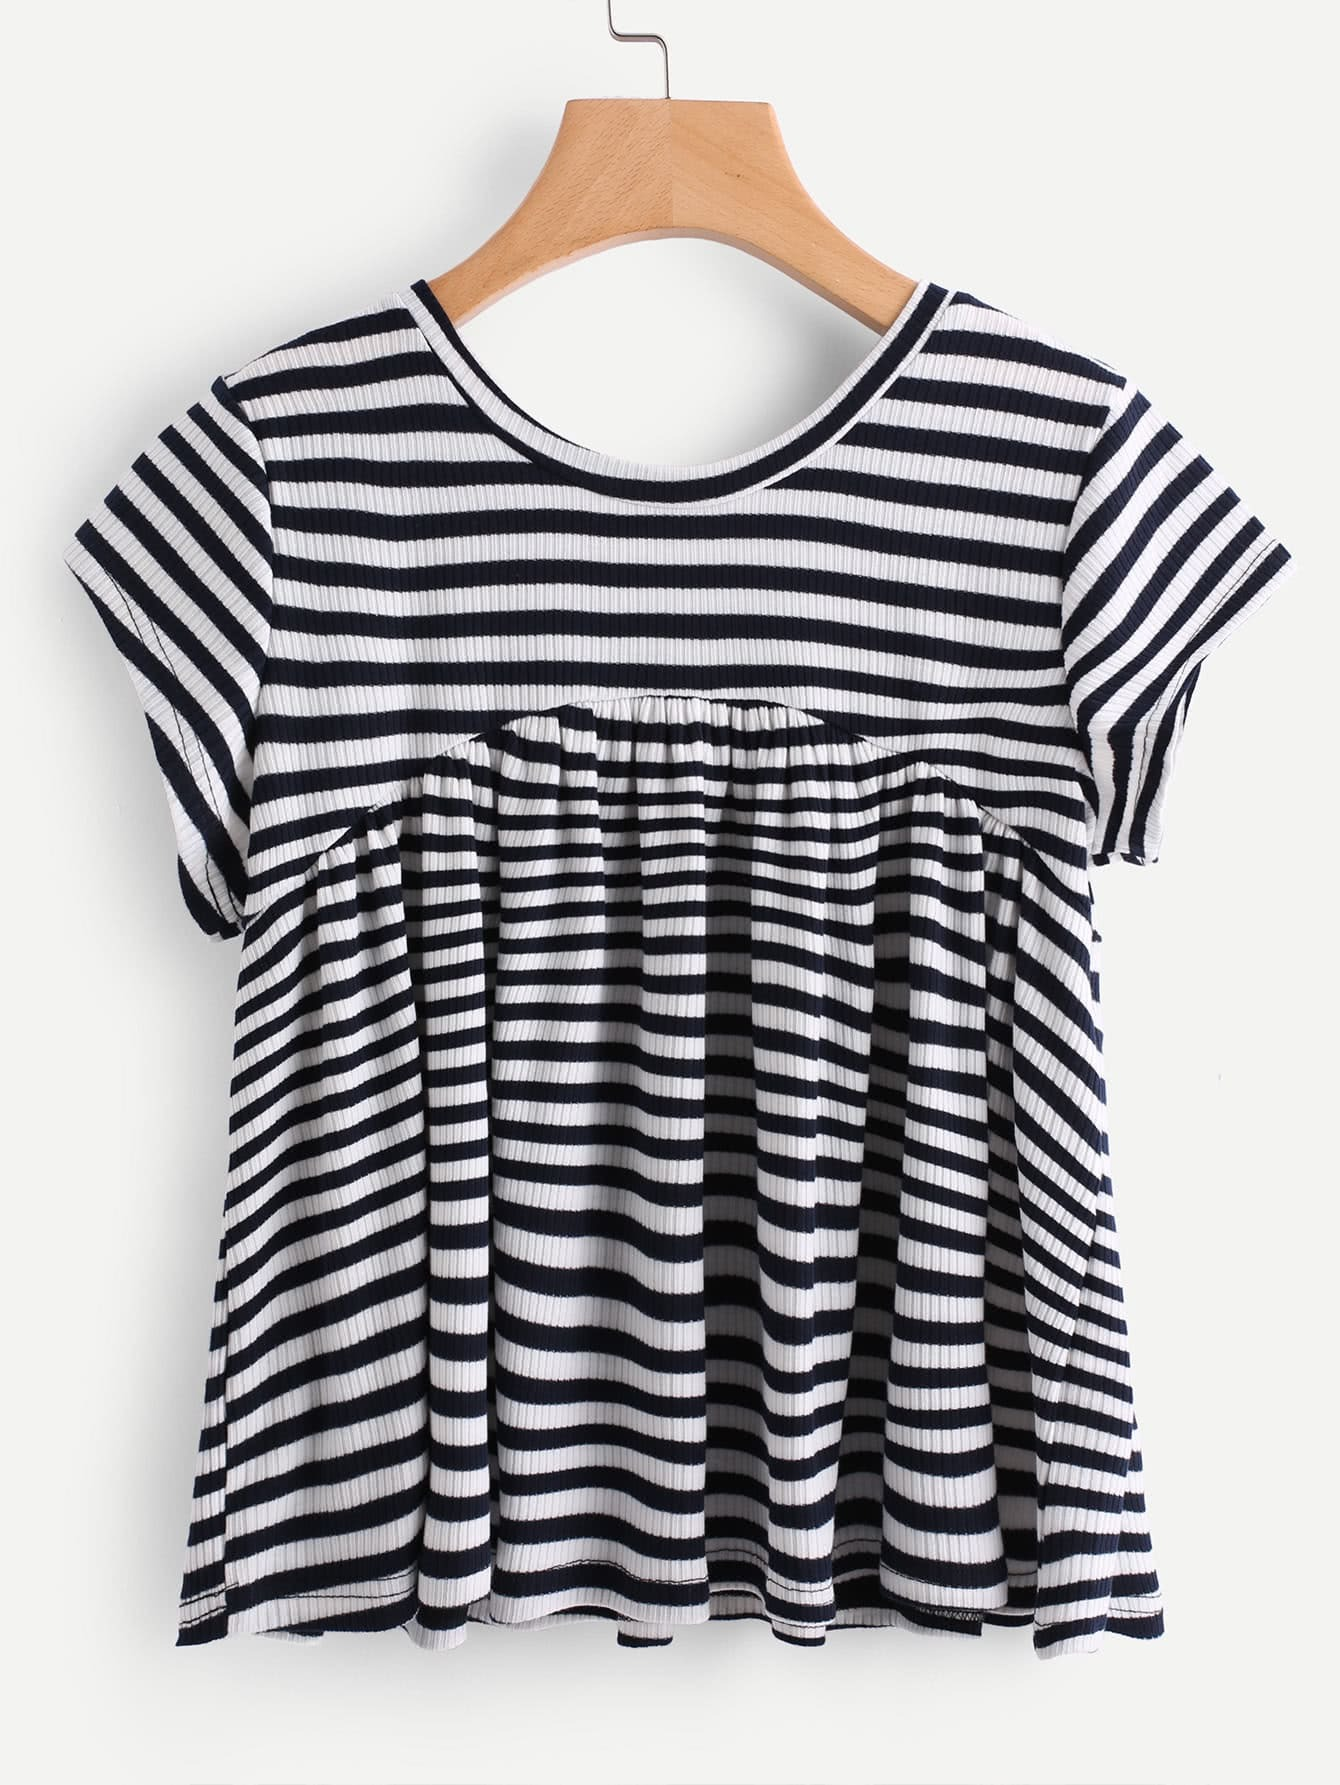 Contrast Striped Ribbed T-shirt tee170720105